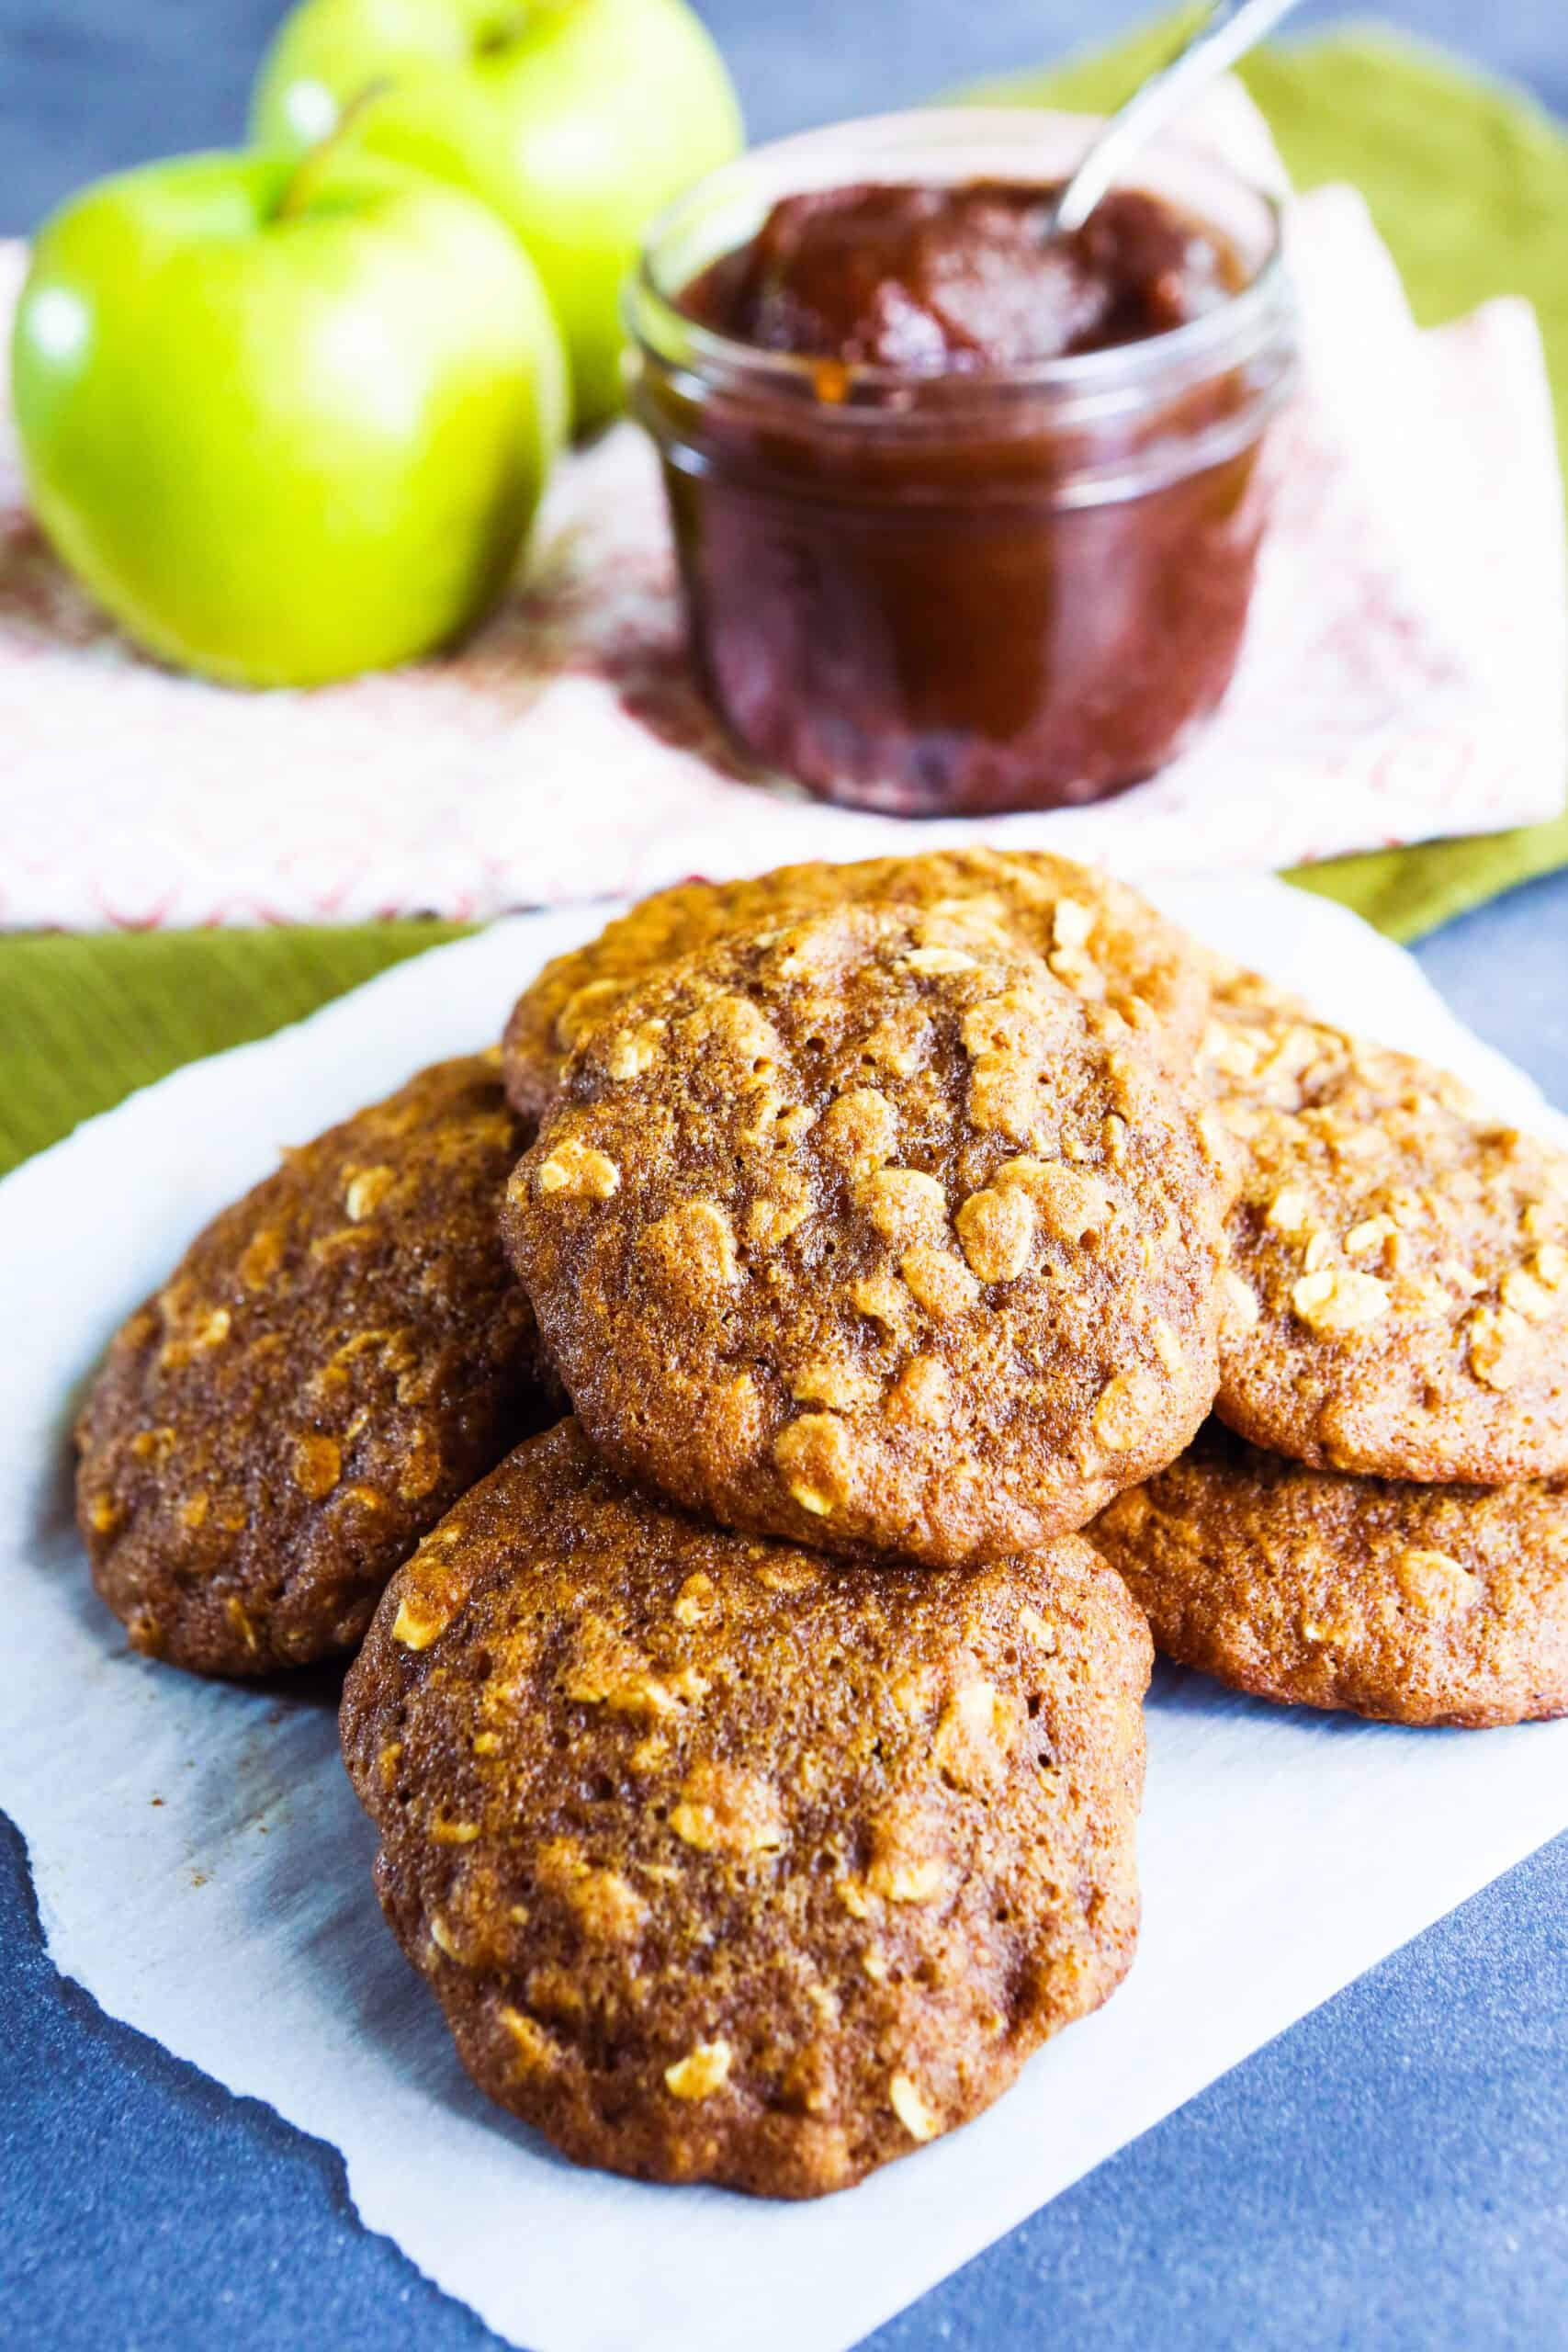 plate full of apple butter oatmeal cookies with a jar of apple butter in the background.